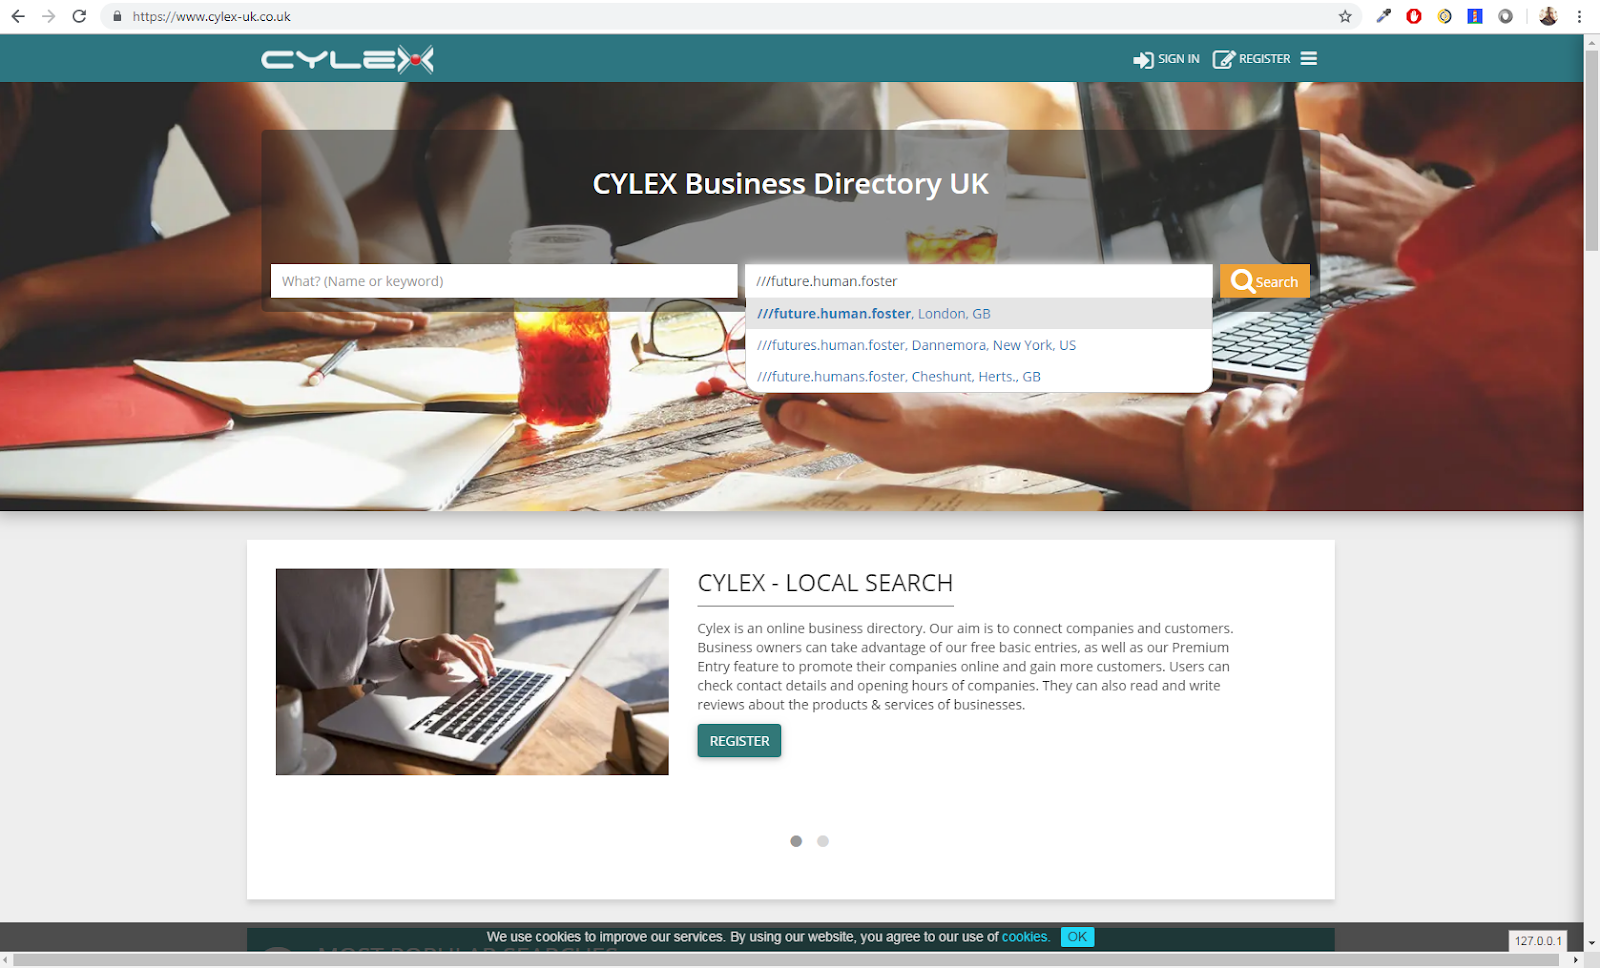 Cylex UK Business Directory